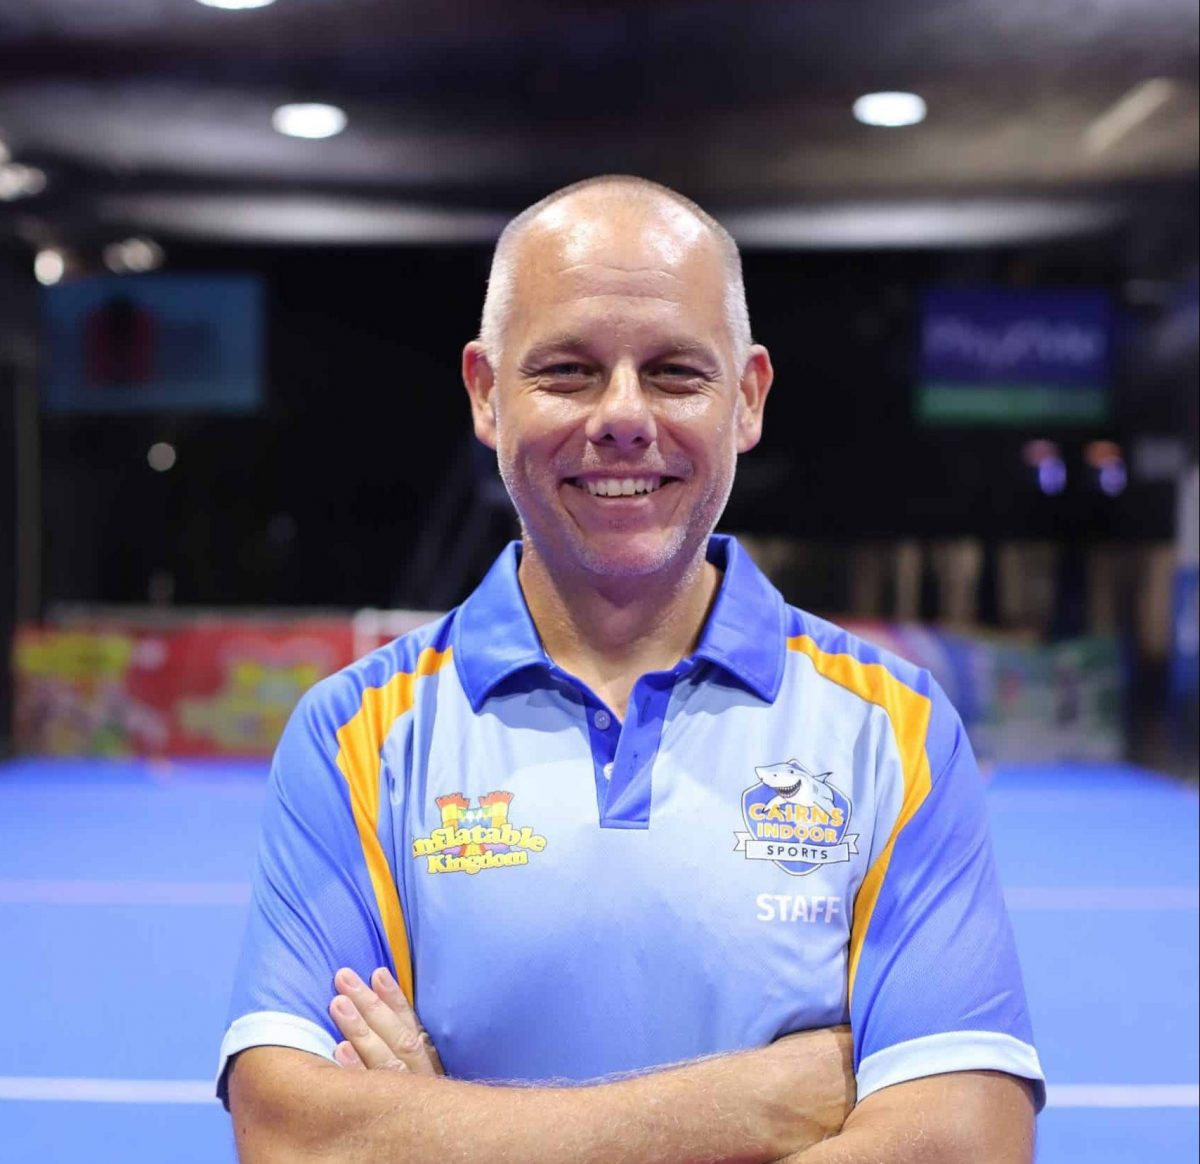 Cairns Indoor Sports - Shane - Sports Manager